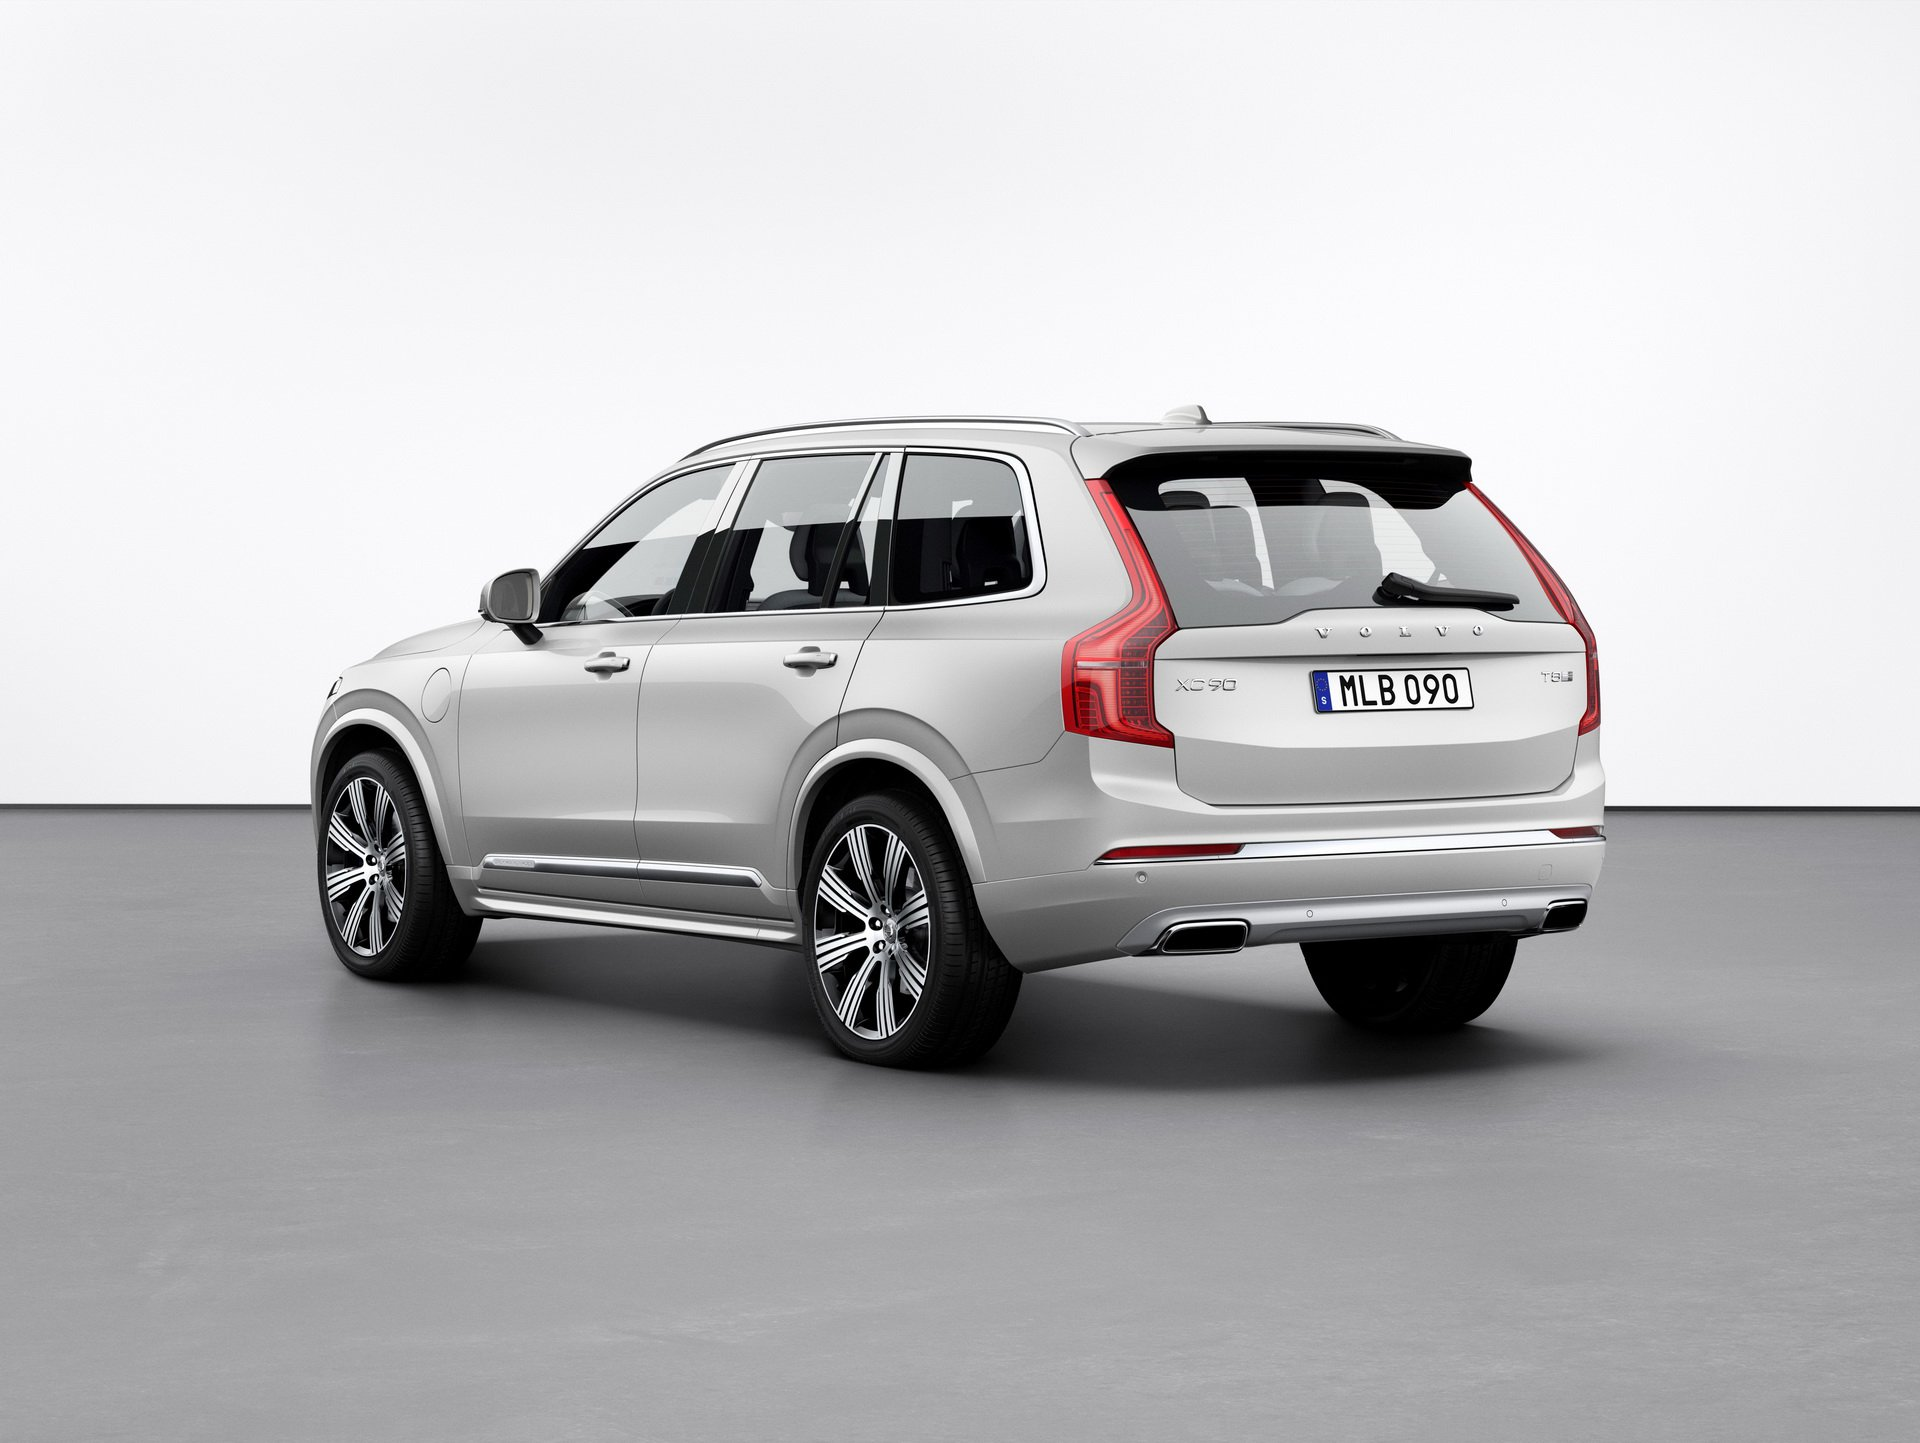 2020 Volvo XC90 rear view